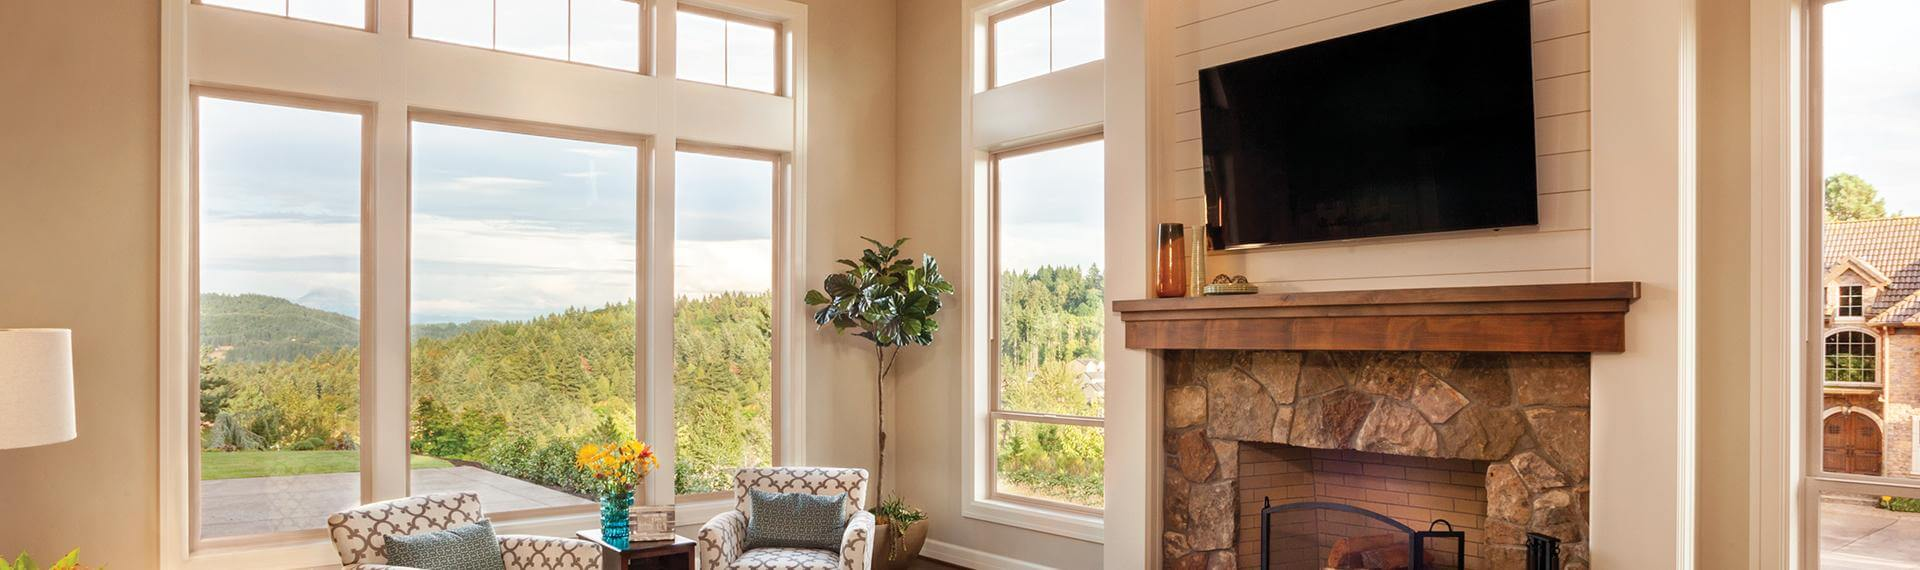 shades and blinds El Paso - Southwestern Home Products